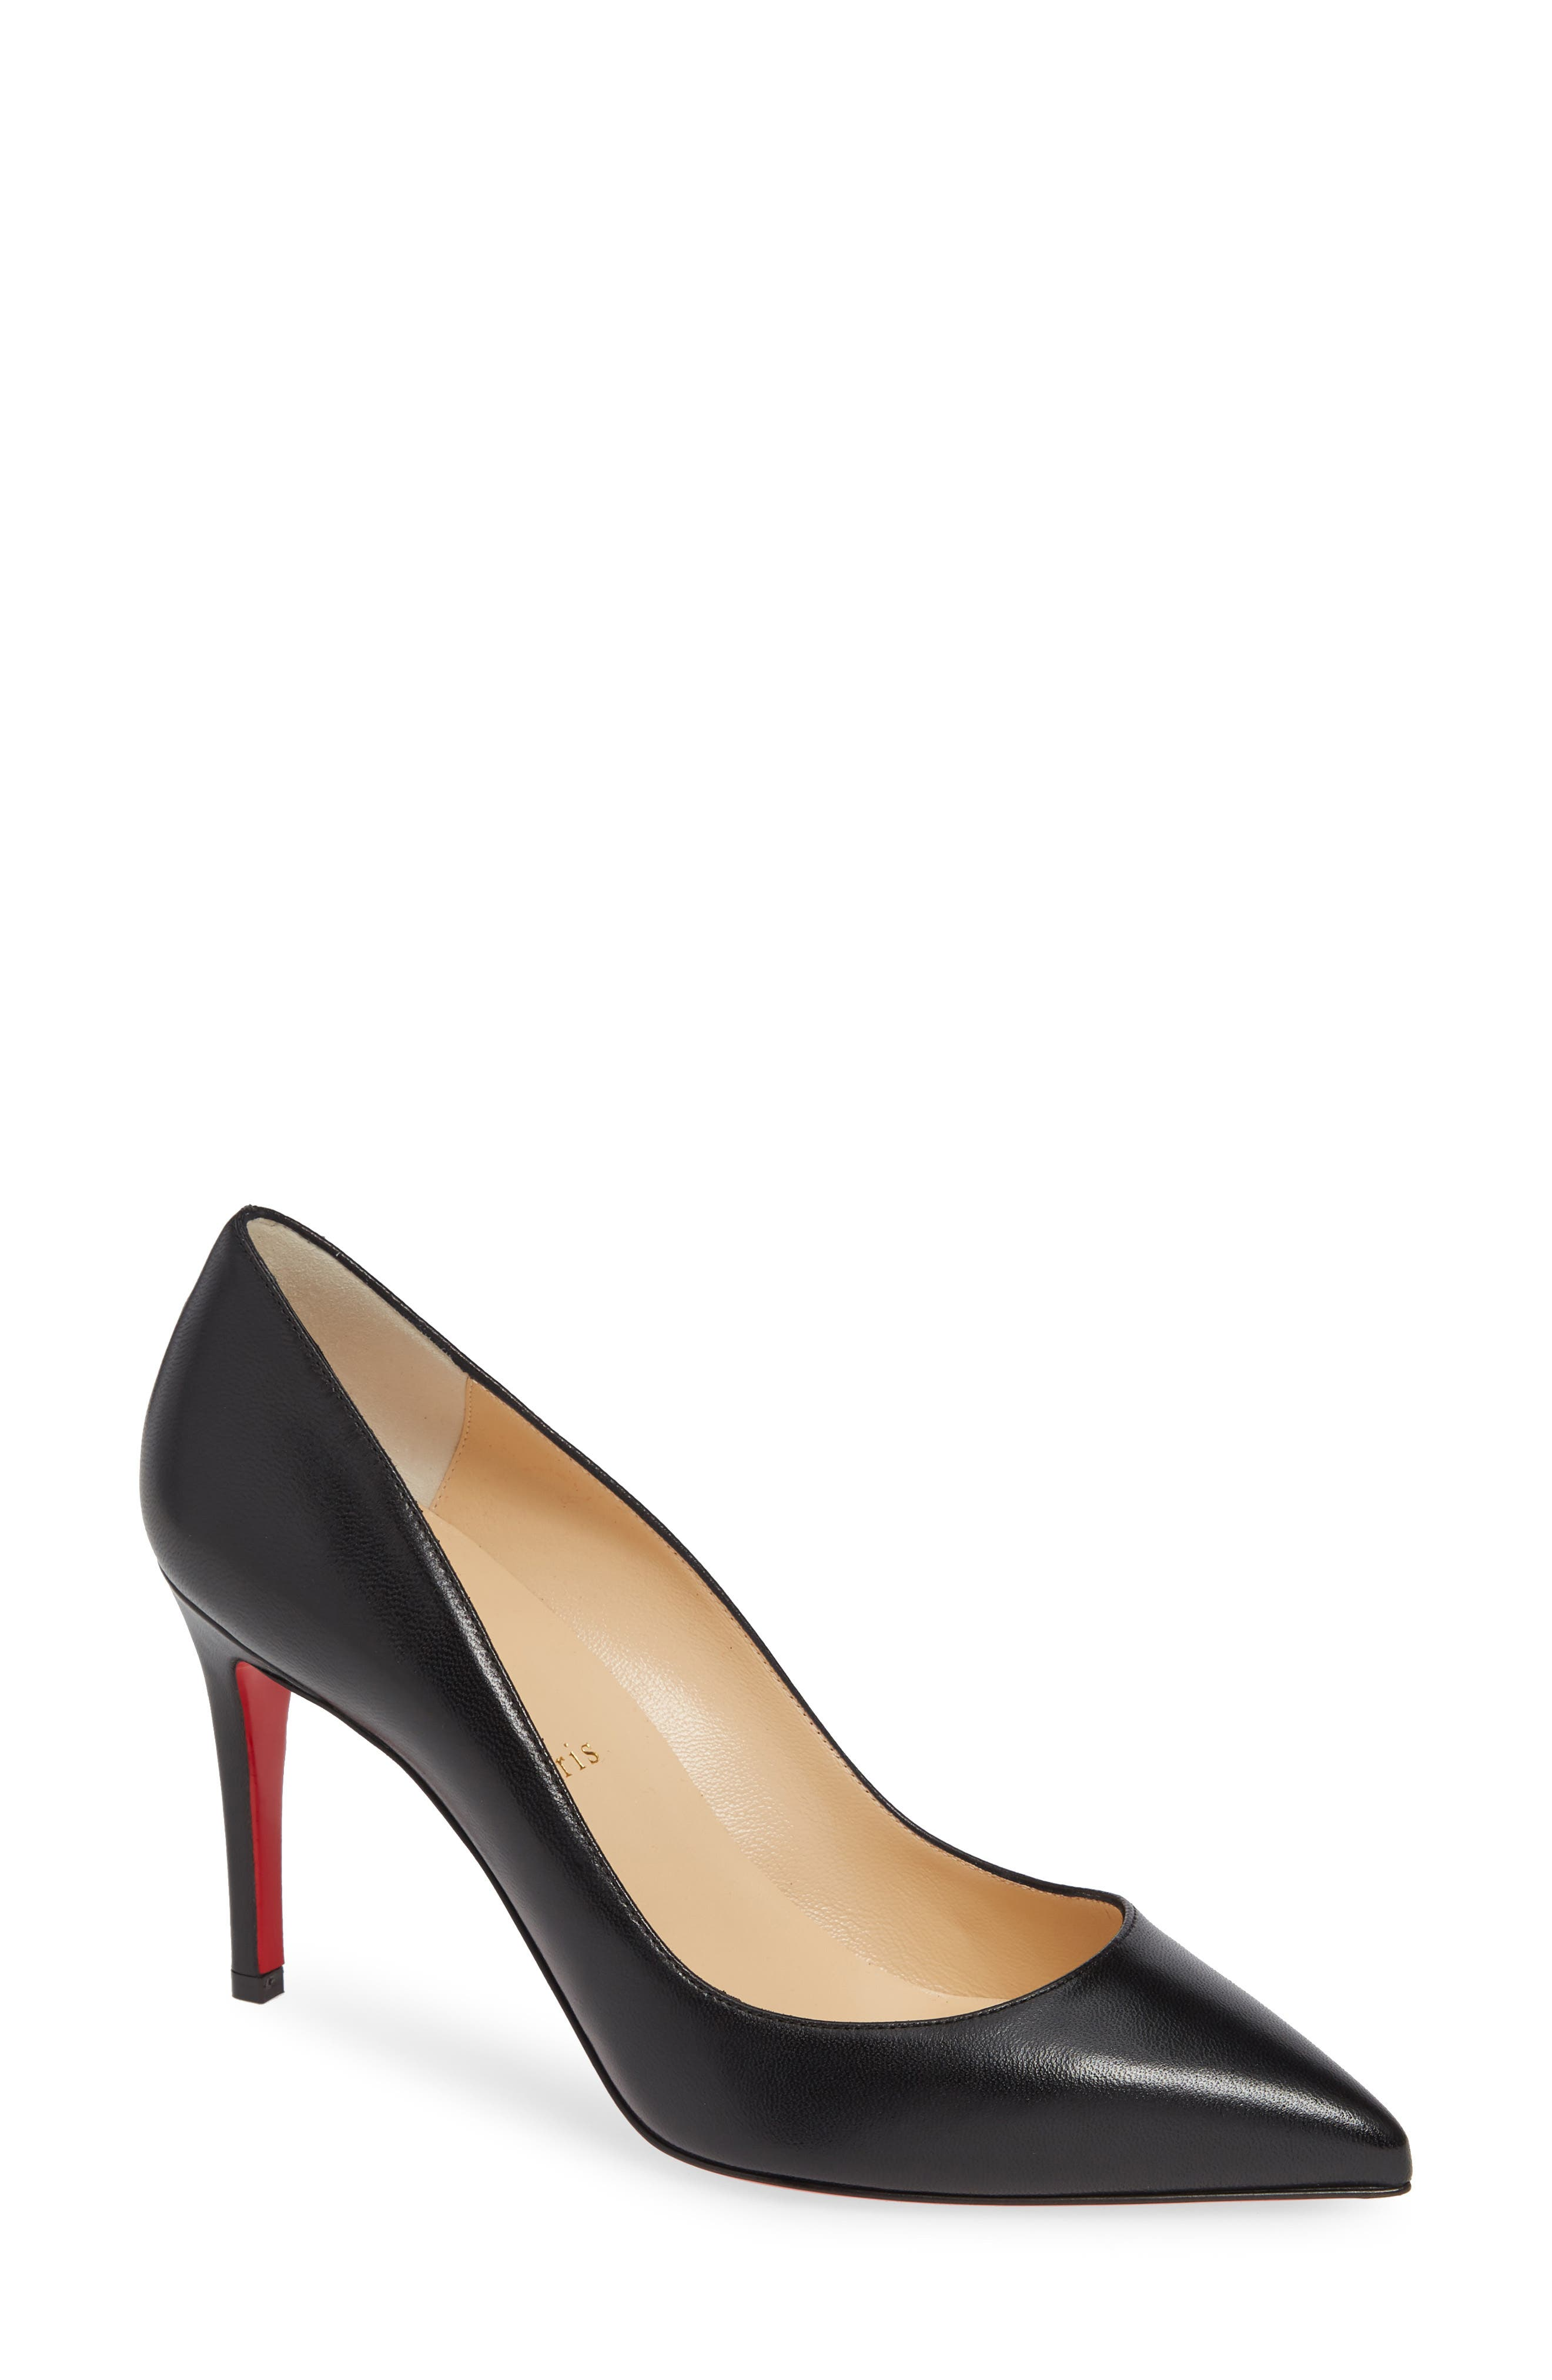 Pigalle Pointy Toe Pump,                         Main,                         color, BLACK